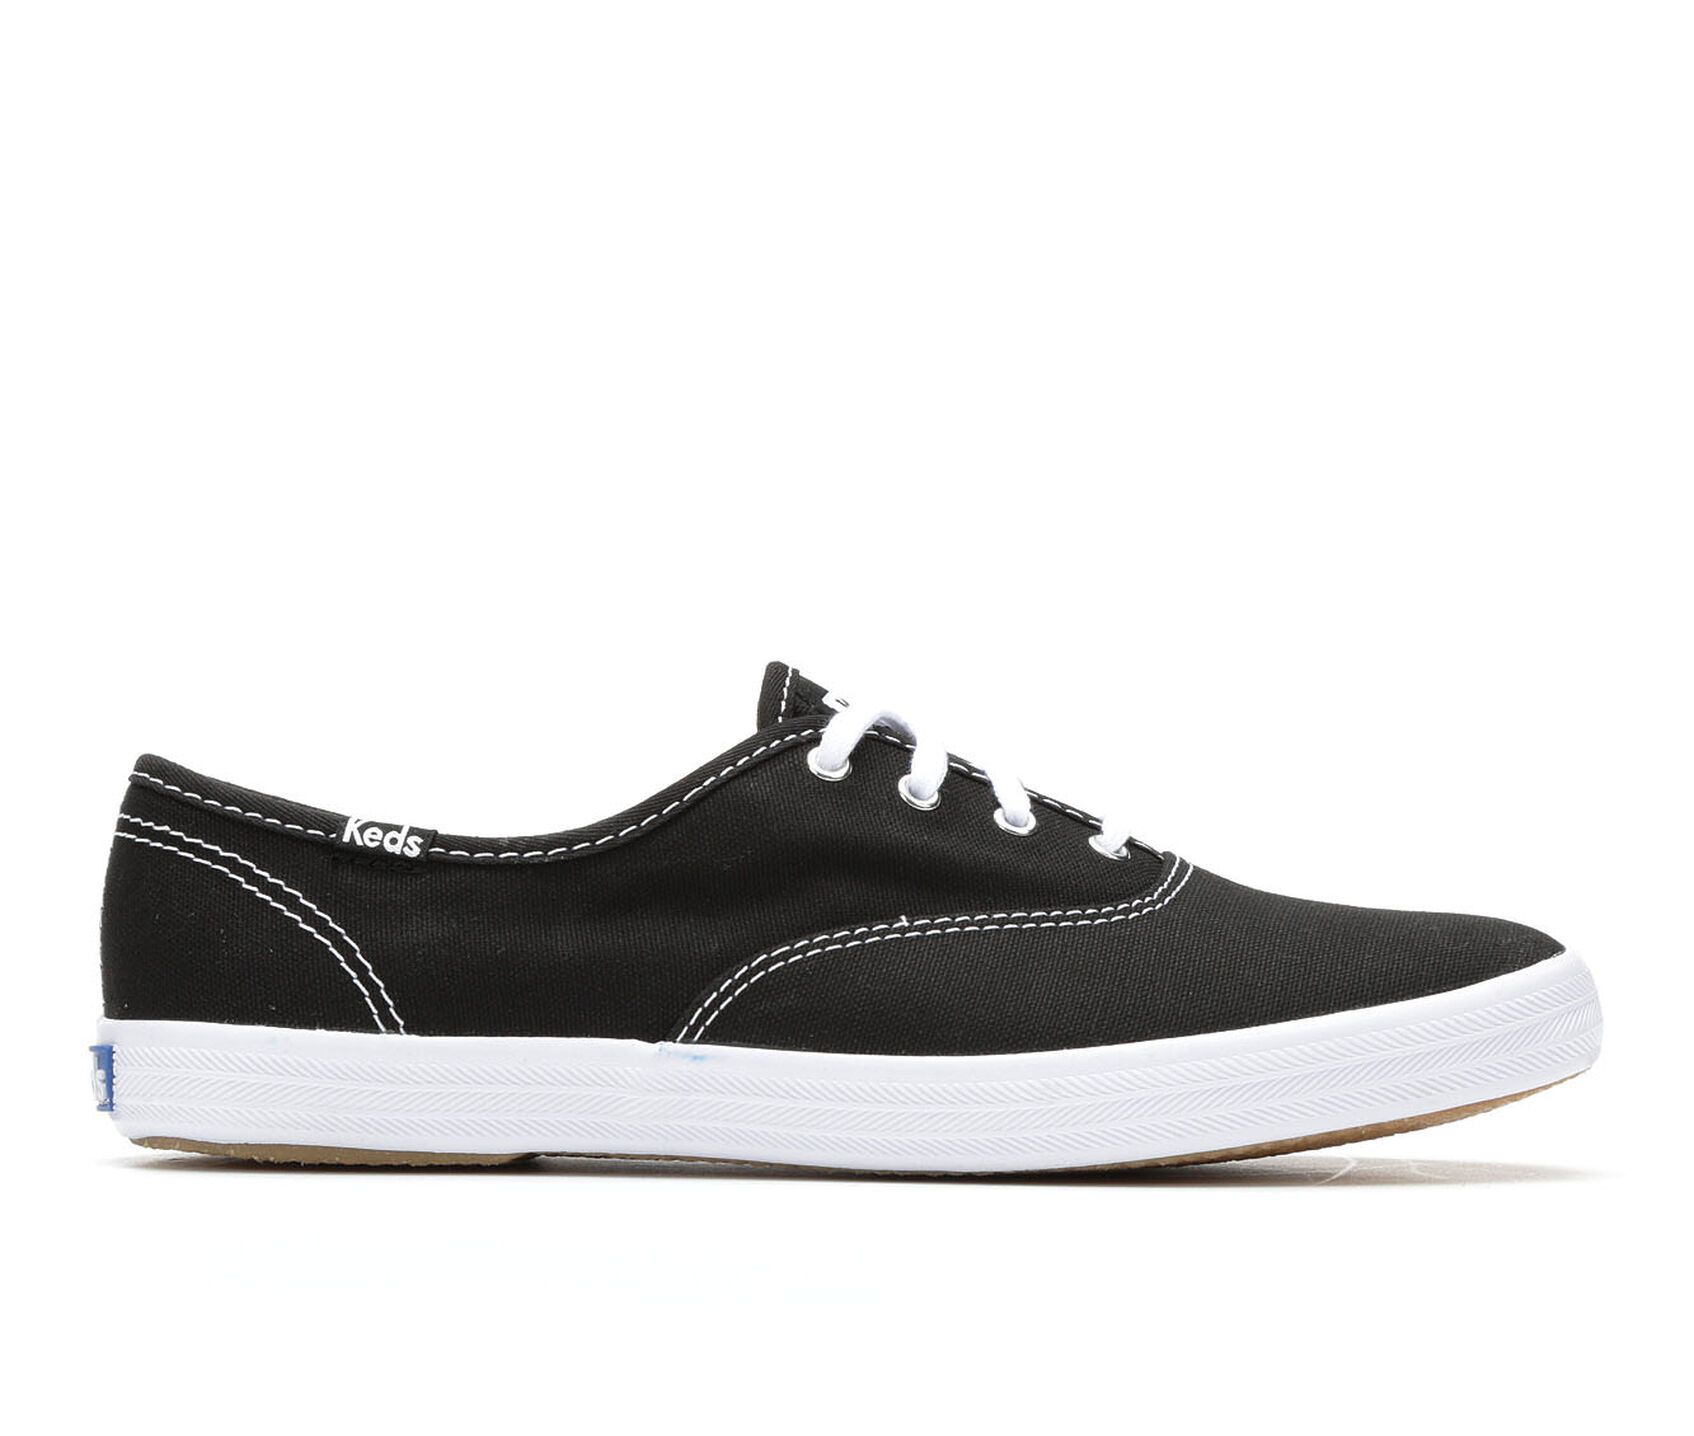 8f7c883945838 ... Keds Champion Canvas Sneakers. Previous